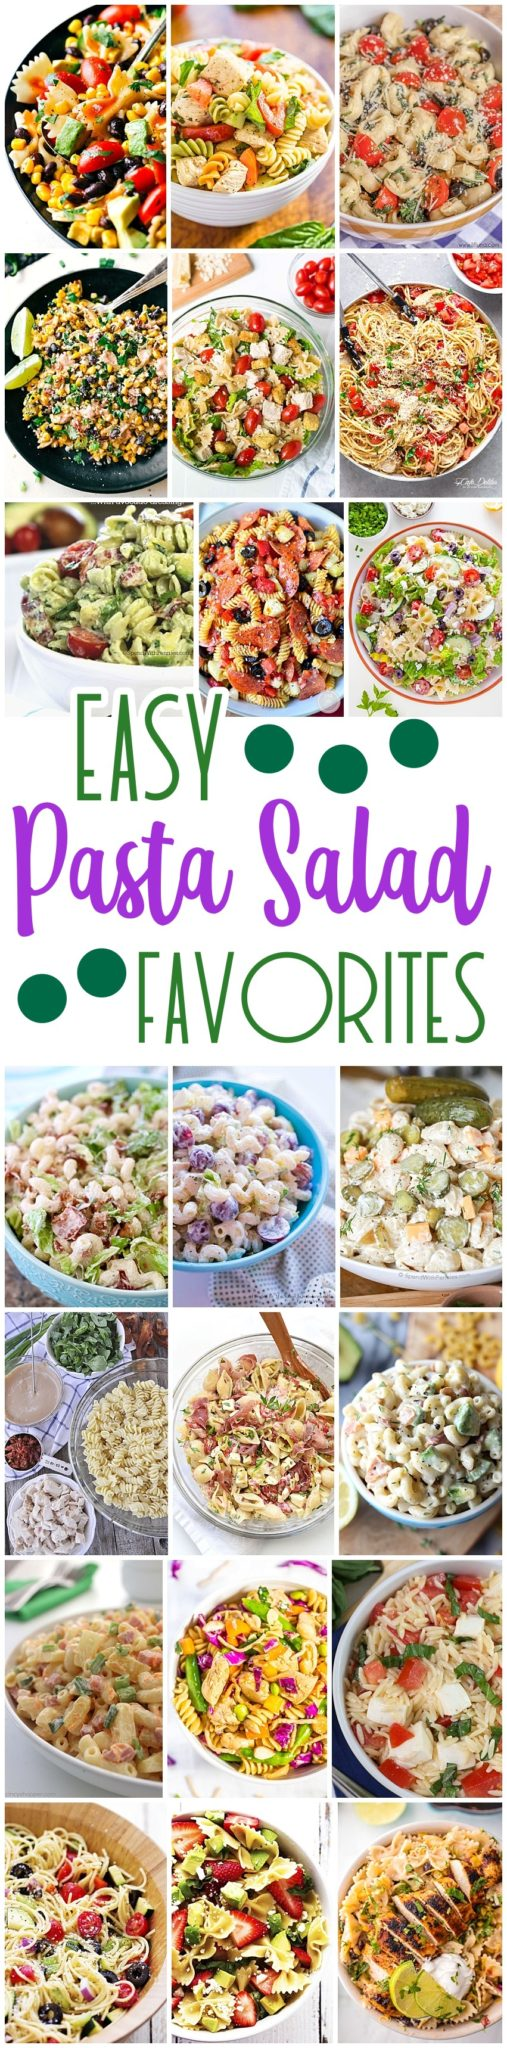 Easy Pasta Salad Recipes - The BEST Yummy Barbecue Side Dishes, Potluck Favorites and Summer Dinner Party Crowd Pleasers- Dreaming in DIY #pastasaladrecipes #pastasalads #pastasalad #easypastasalad #potluckrecipes #potluck #partyfood #4thofJuly #picnicfood #sidedishrecipes #easysidedishes #cookoutfood #barbecuefood #blockparty